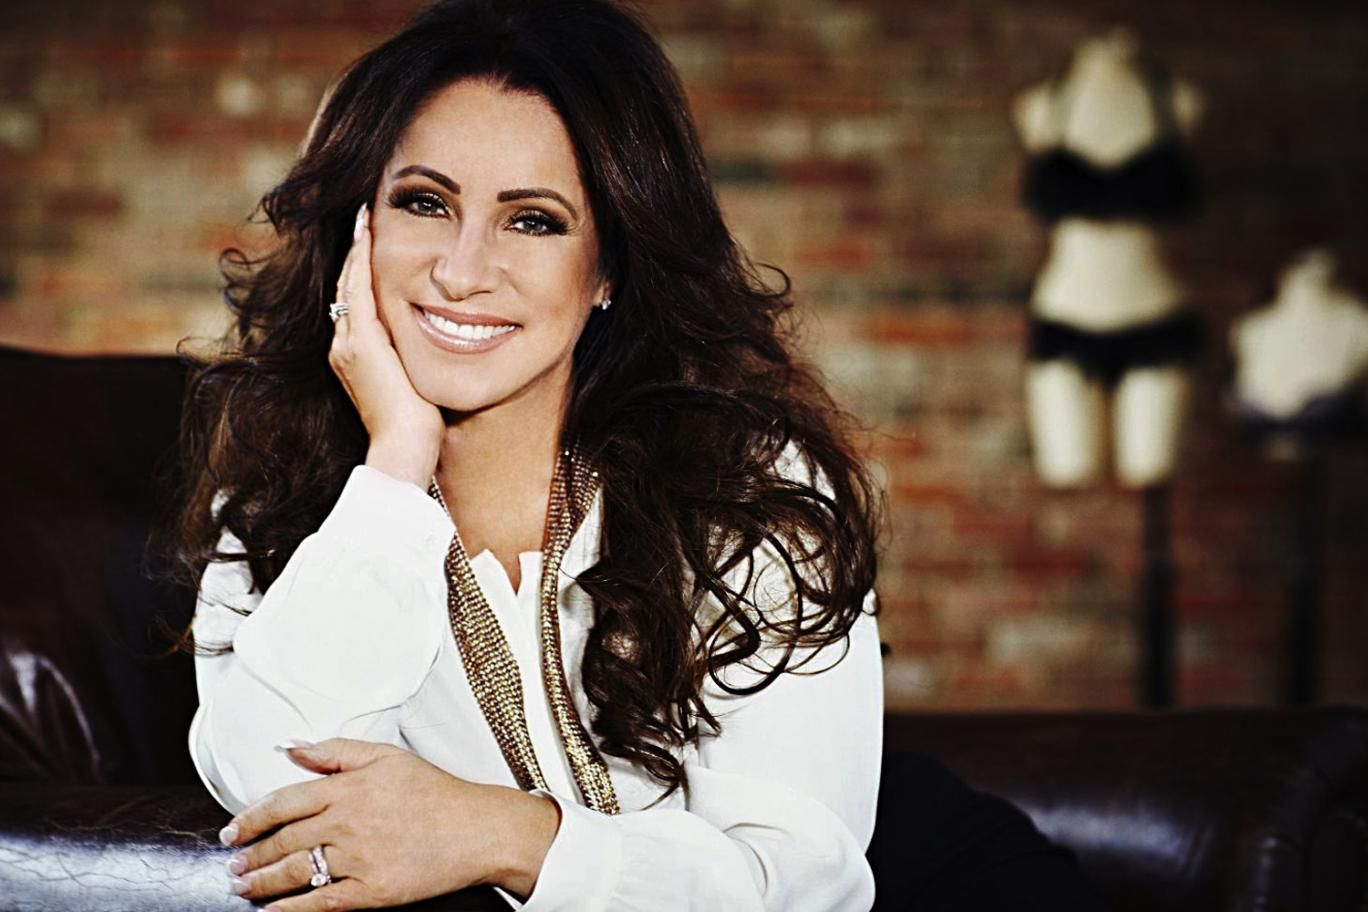 """""""That's Jacqueline Gold,"""" whispered Barbara. """"Her father David Gold owns Gold Group International which is the parent company of Ann Summers. Jacqueline became CEO of Ann Summers 10 years ago. She's basically credited as the person who sexed up the British high street, and now she's one of the richest women in the country."""""""